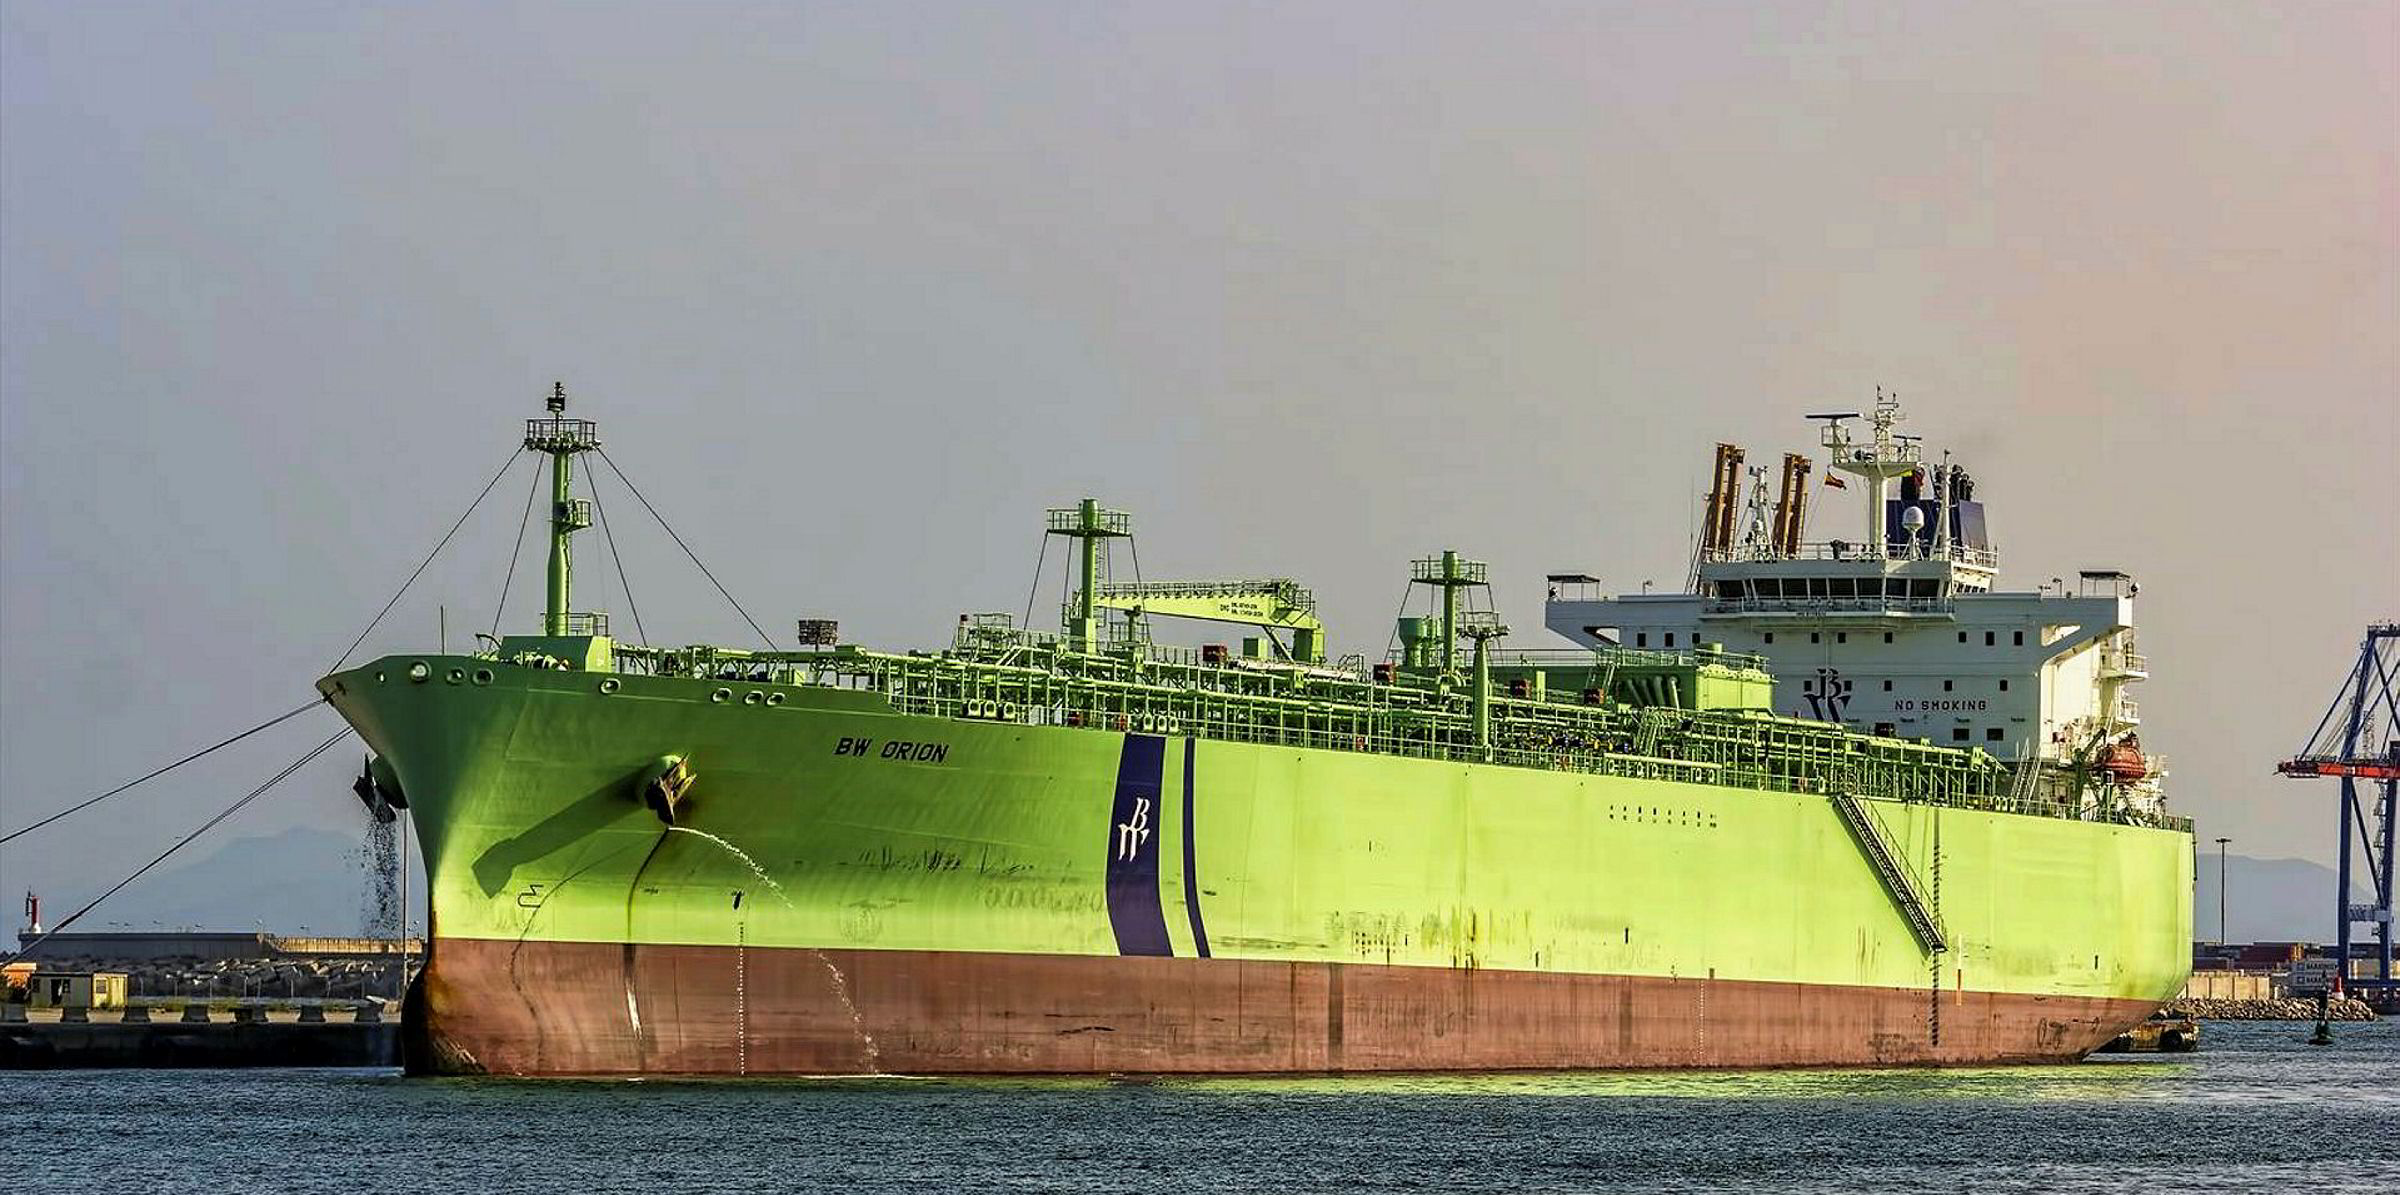 LPG bunkering begins to win favour from VLGC shipowners